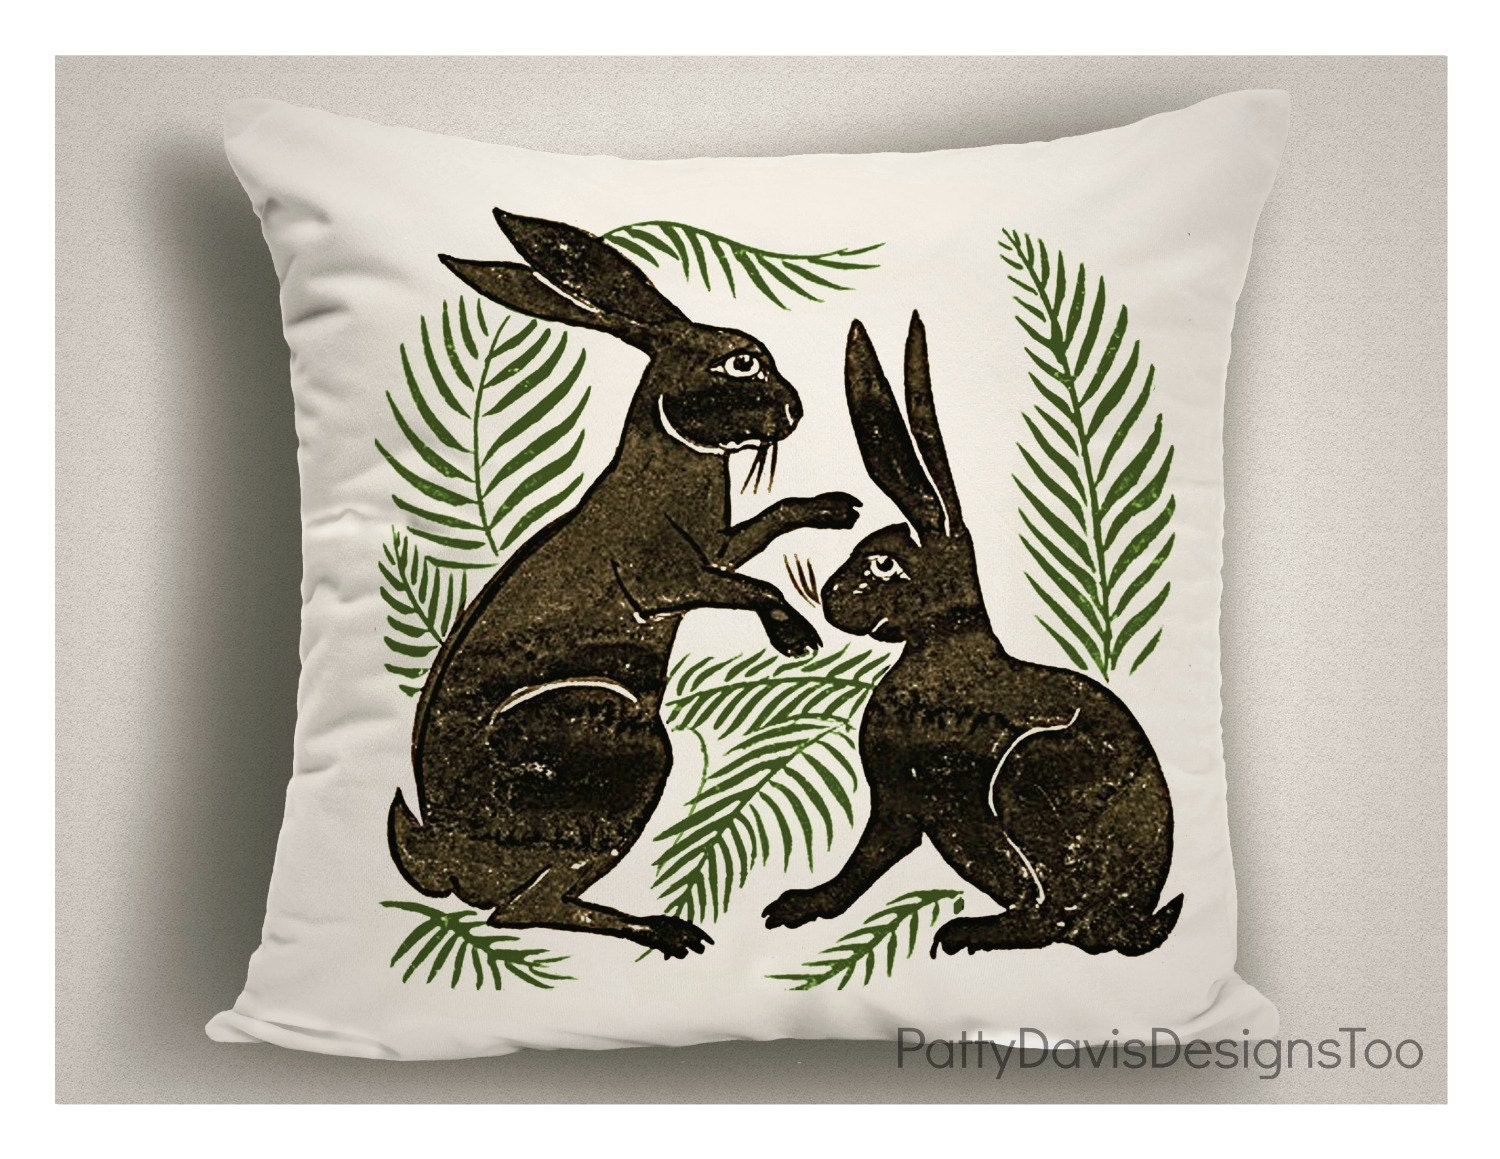 Decorative Pillows For Easter : Unique Easter Pillows With Bufnnies and Ferns Easter Pillow